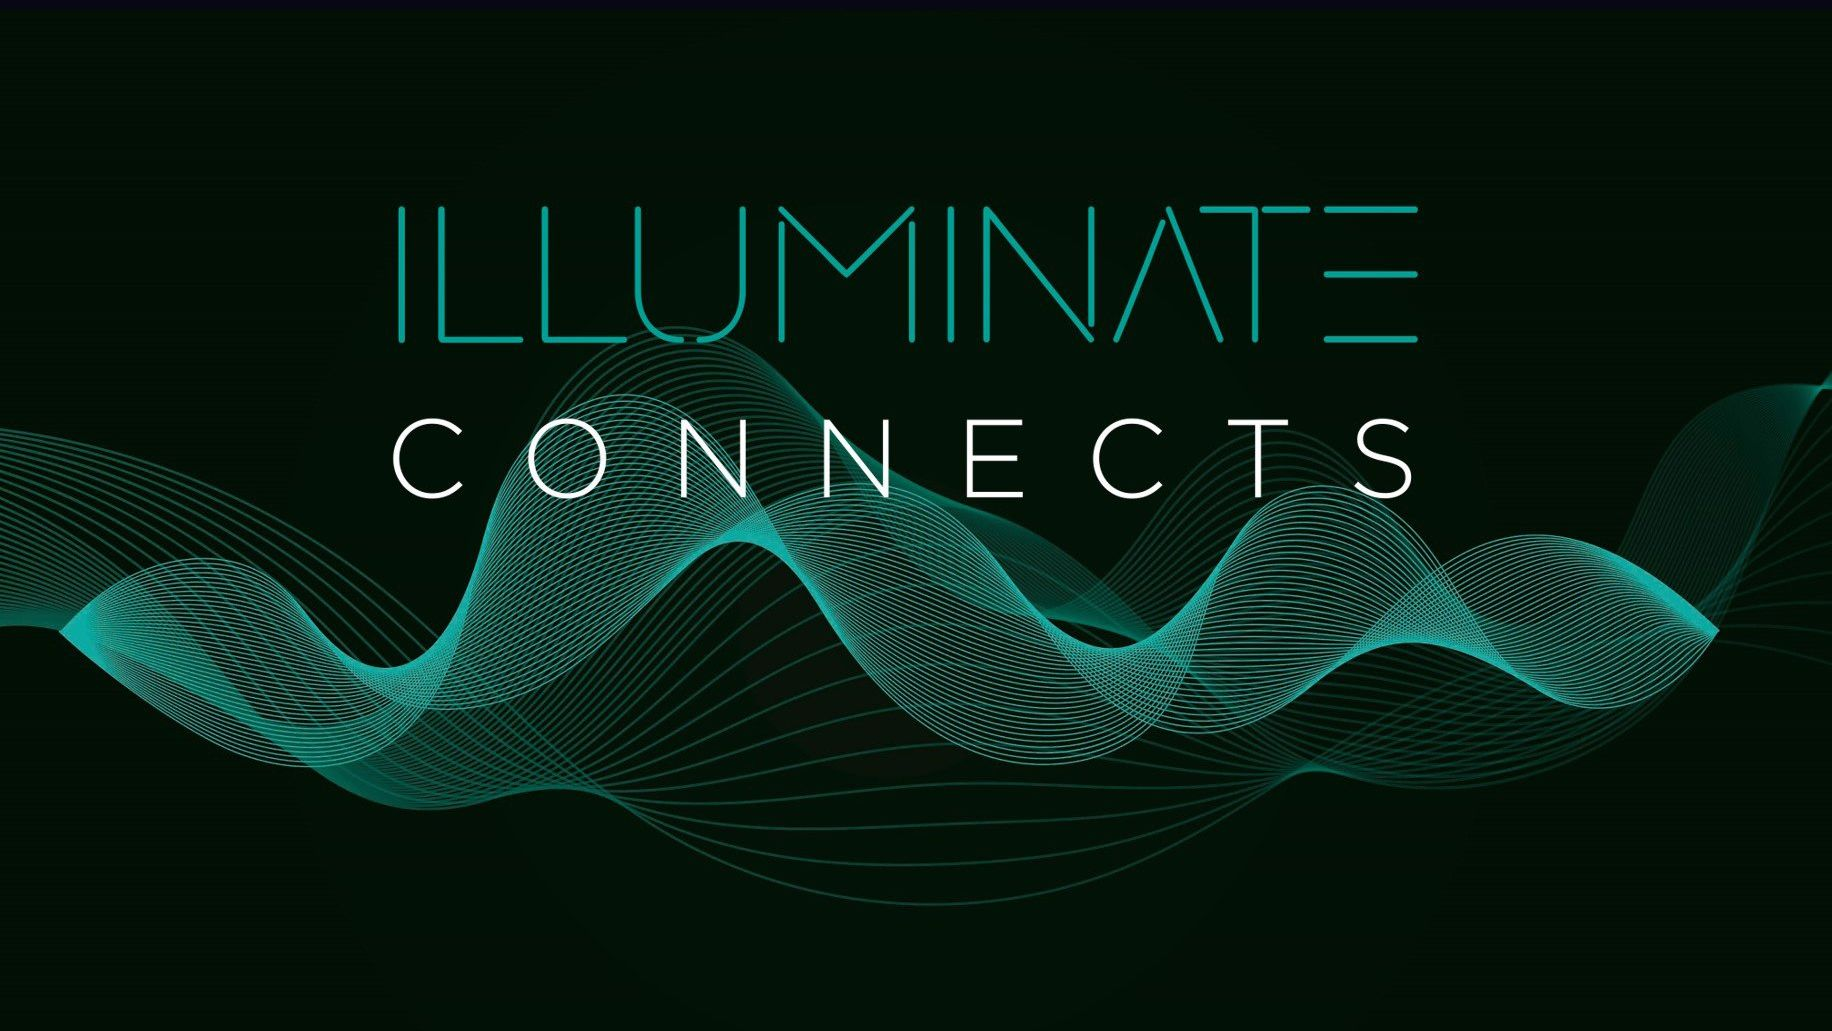 ILLUMINATE Connects